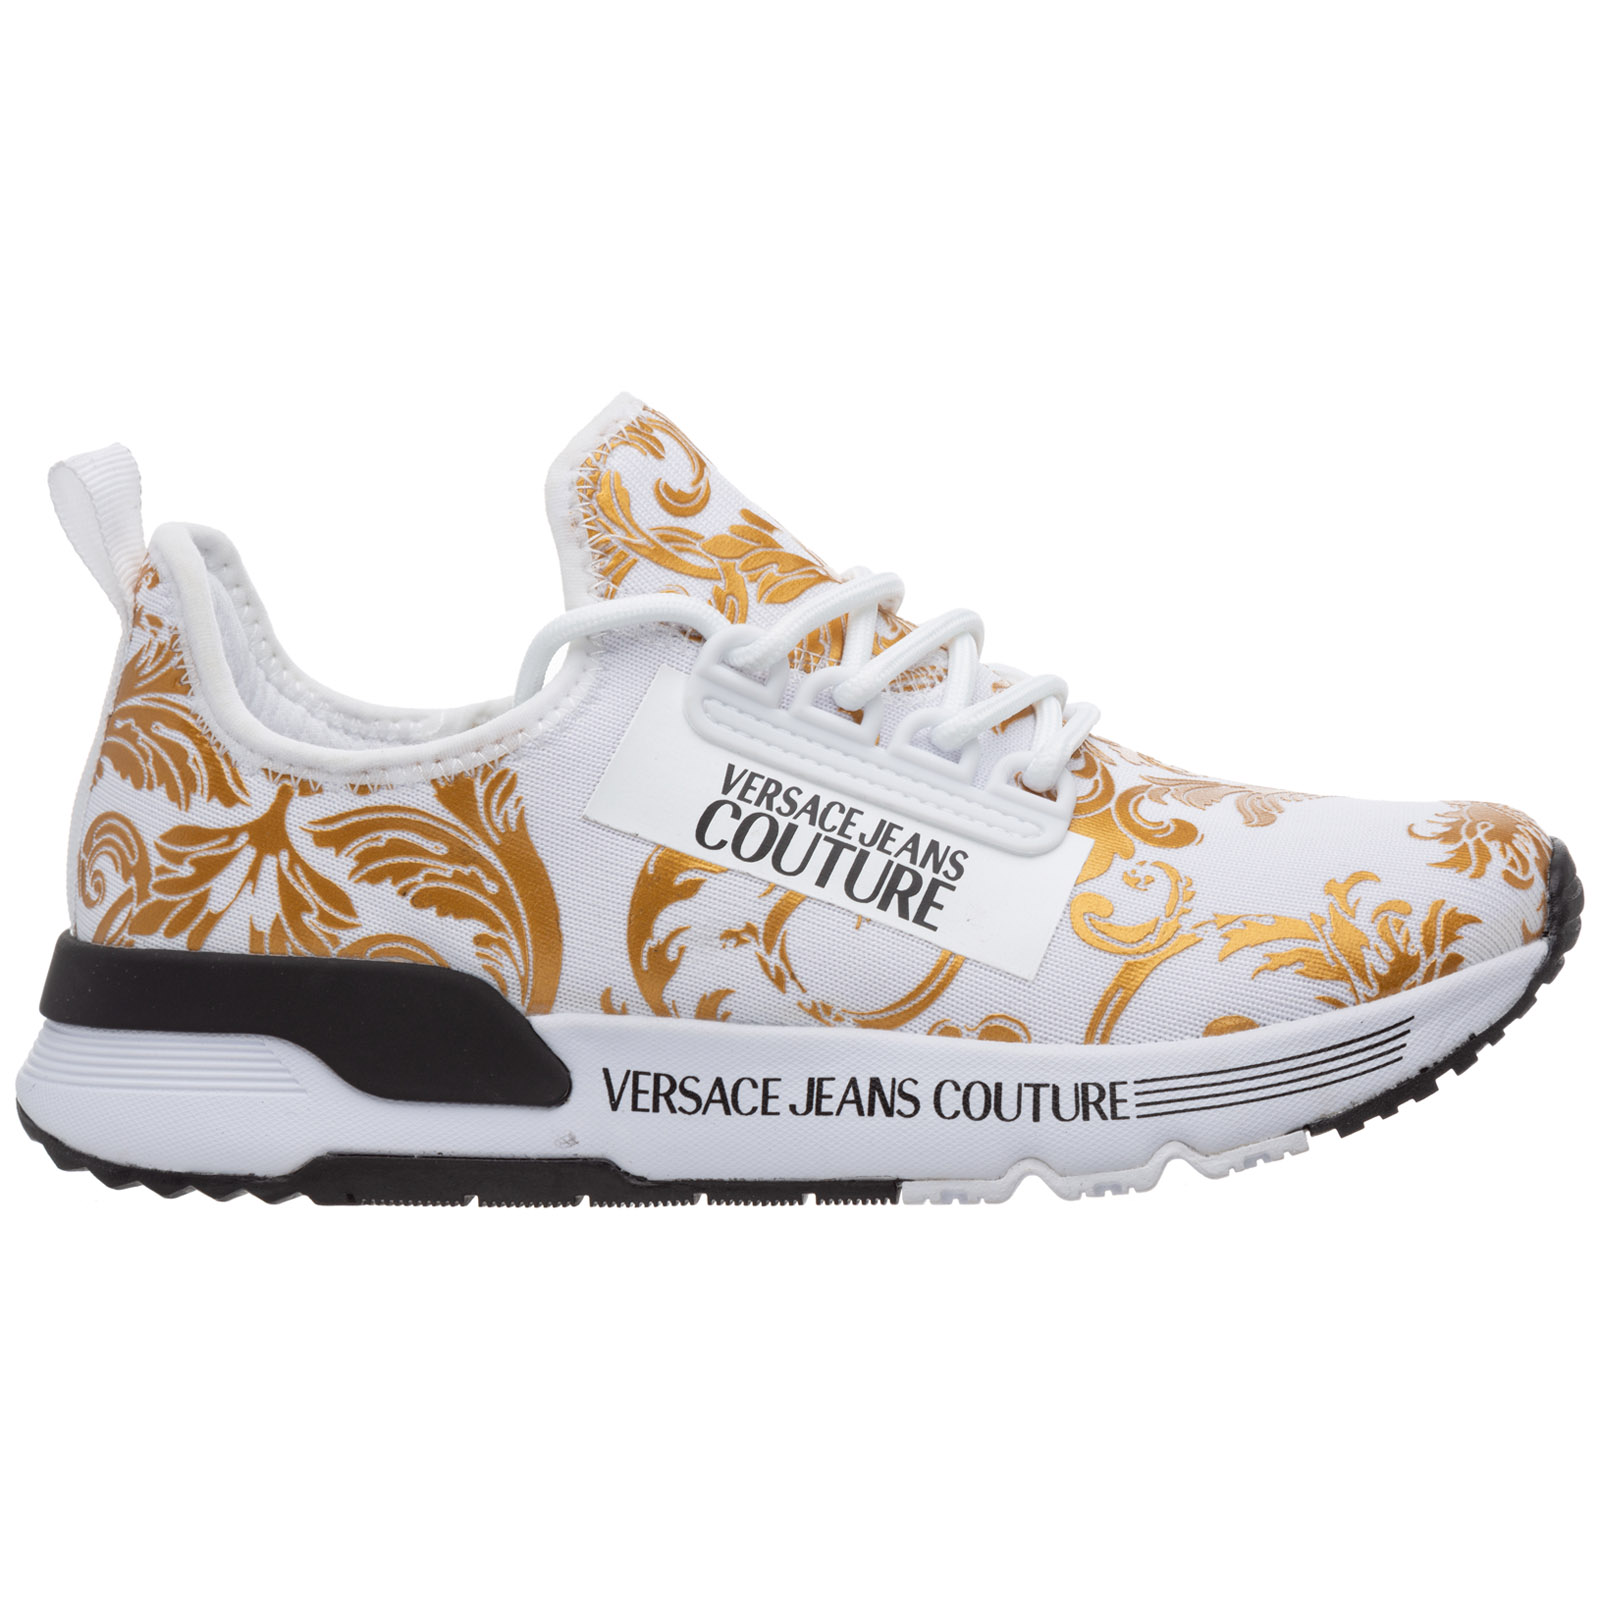 Versace Jeans Couture Sneakers WOMEN'S SHOES TRAINERS SNEAKERS  FONDO AERODYNAMIC